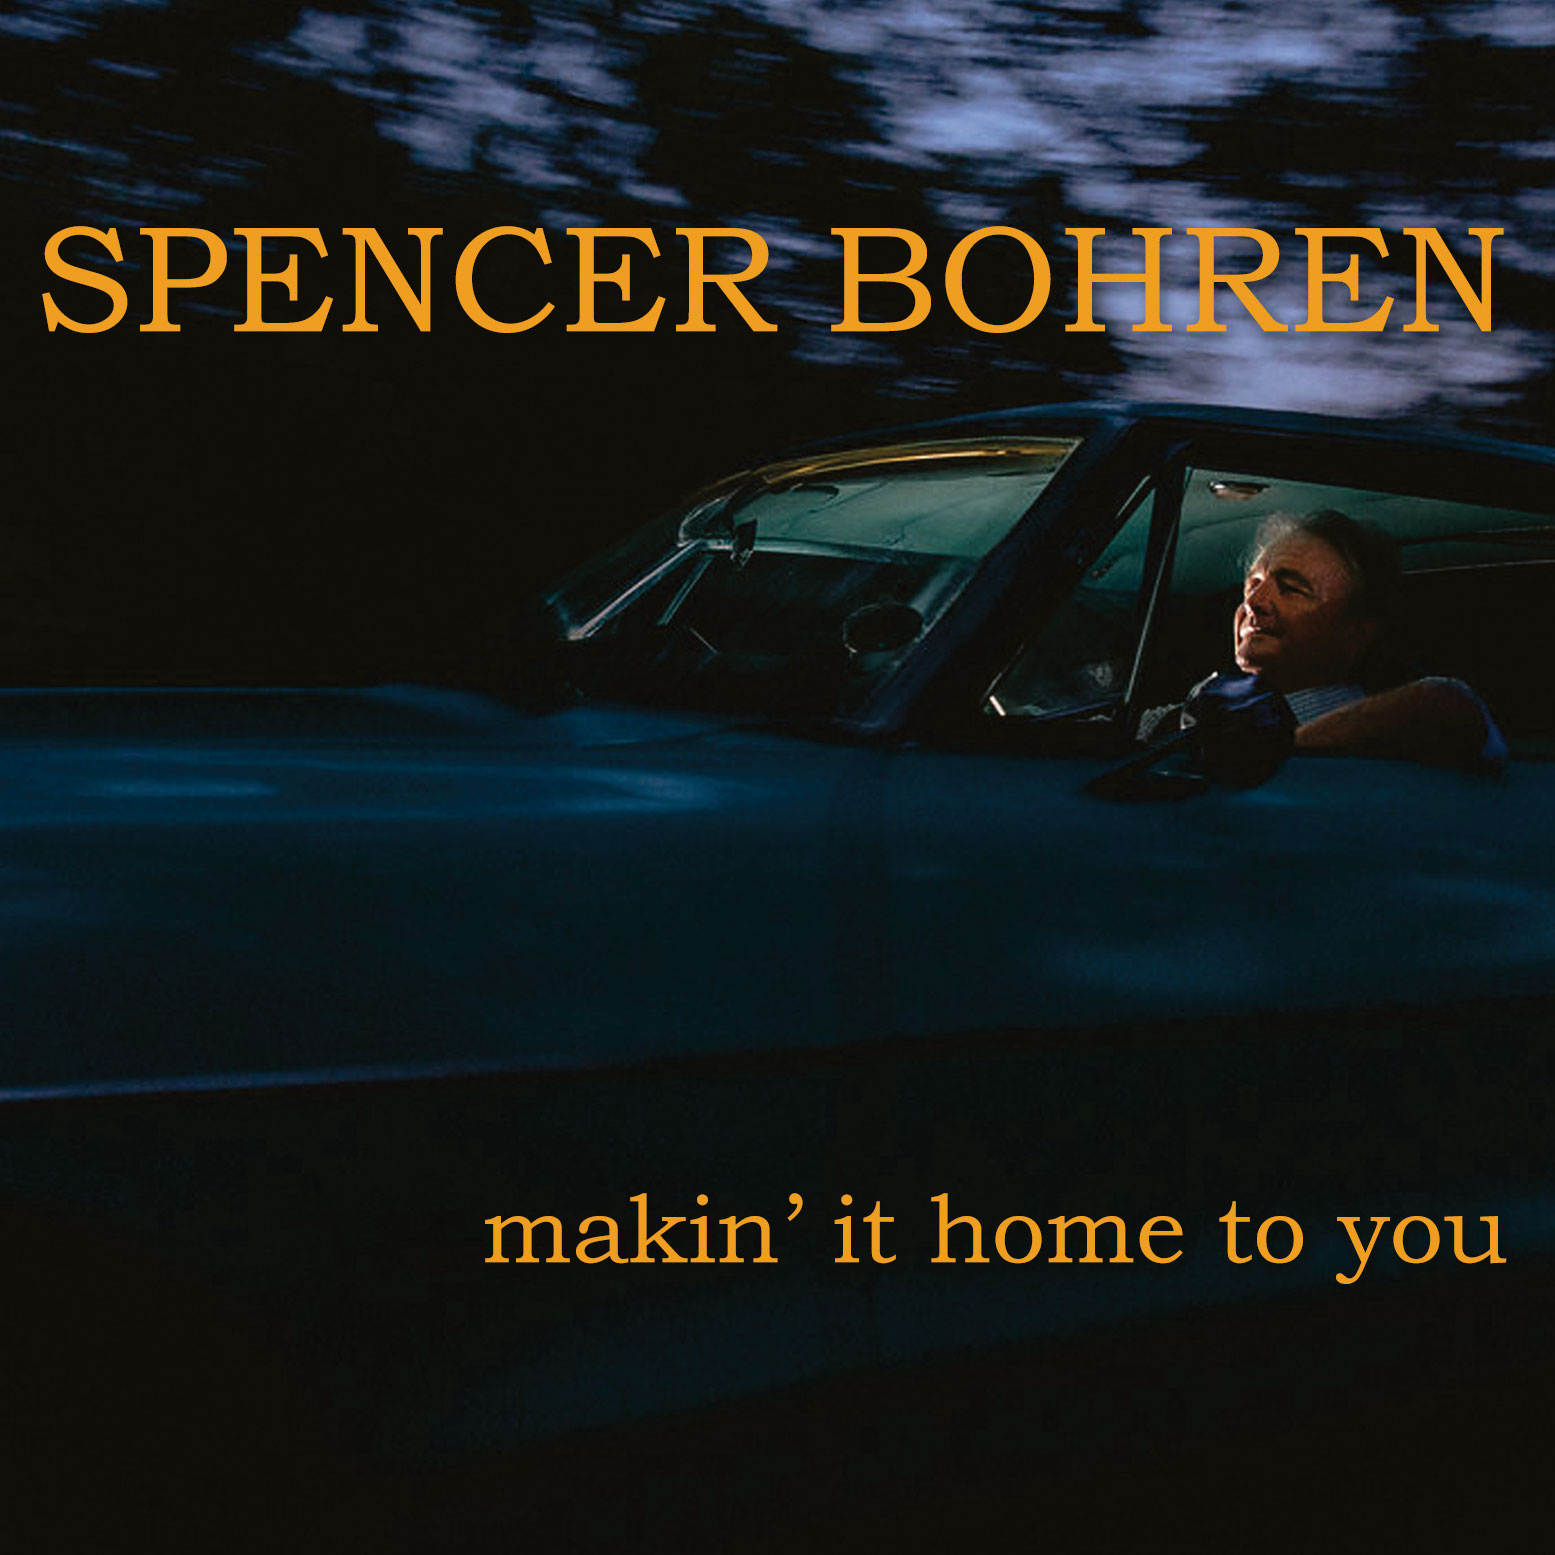 spencer-bohren-makin-it-home-to-you.jpg